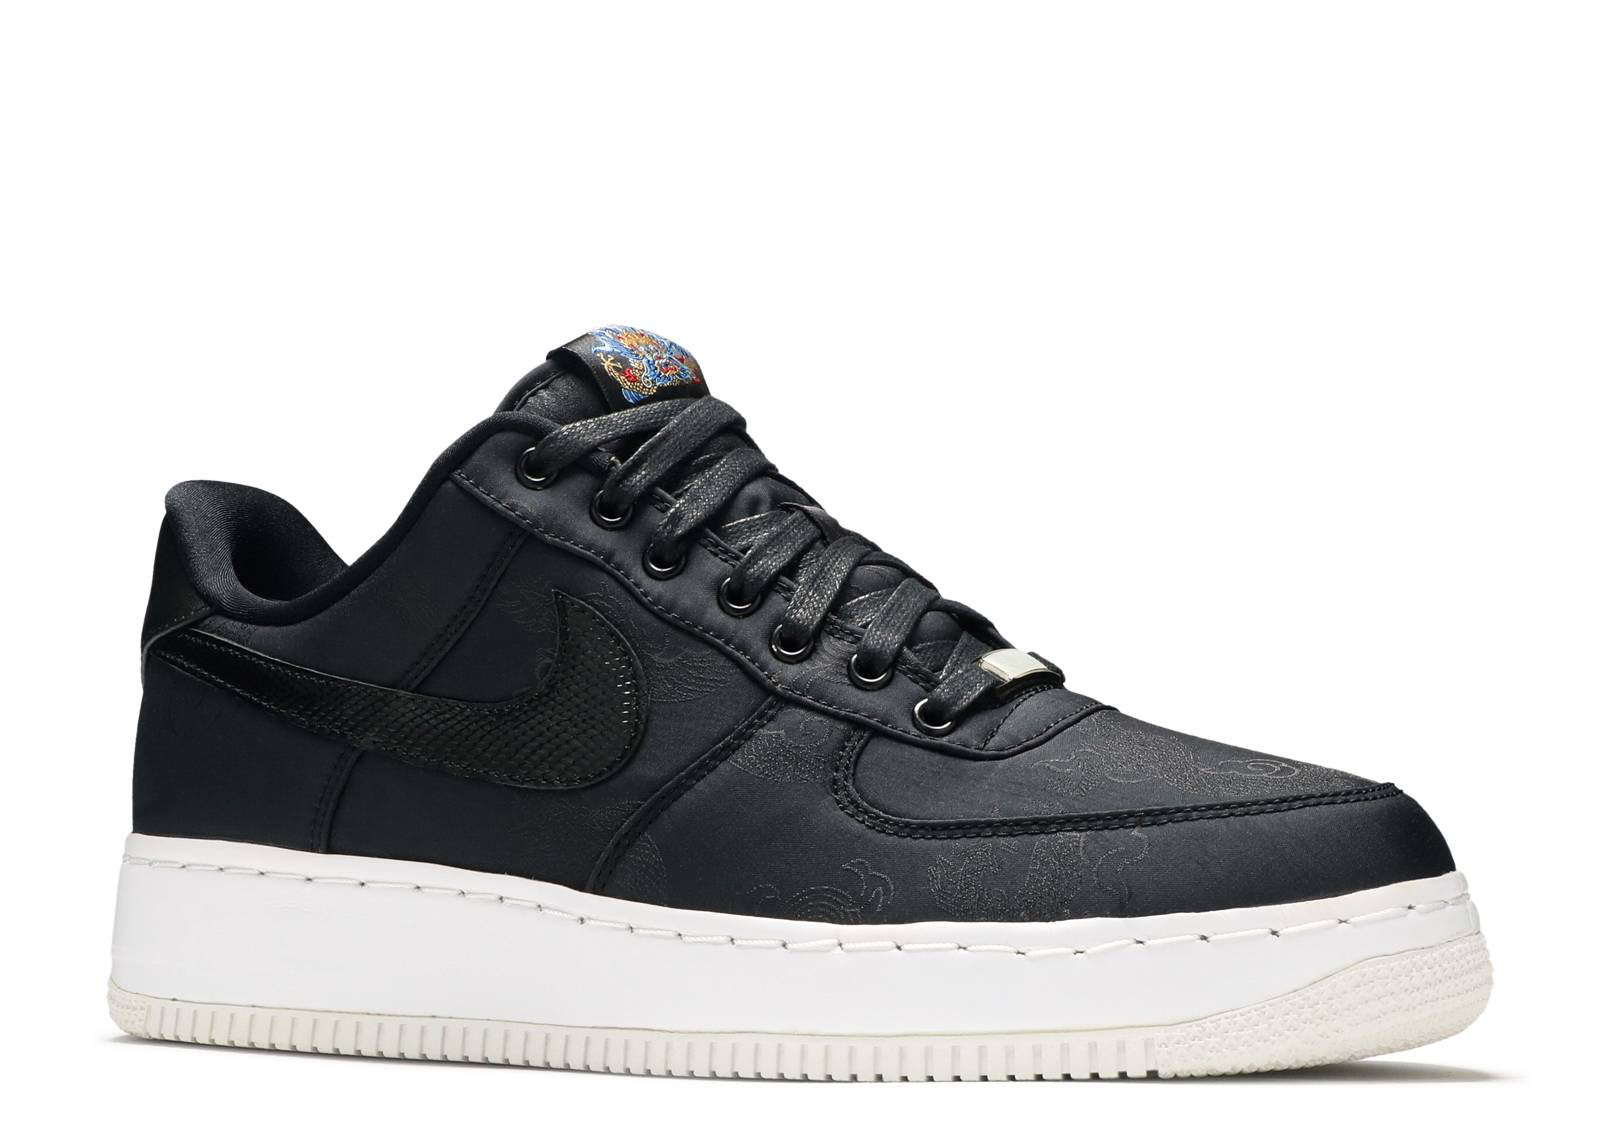 new style f9b64 12be7 Air Force 1 Low Supreme I o Tz